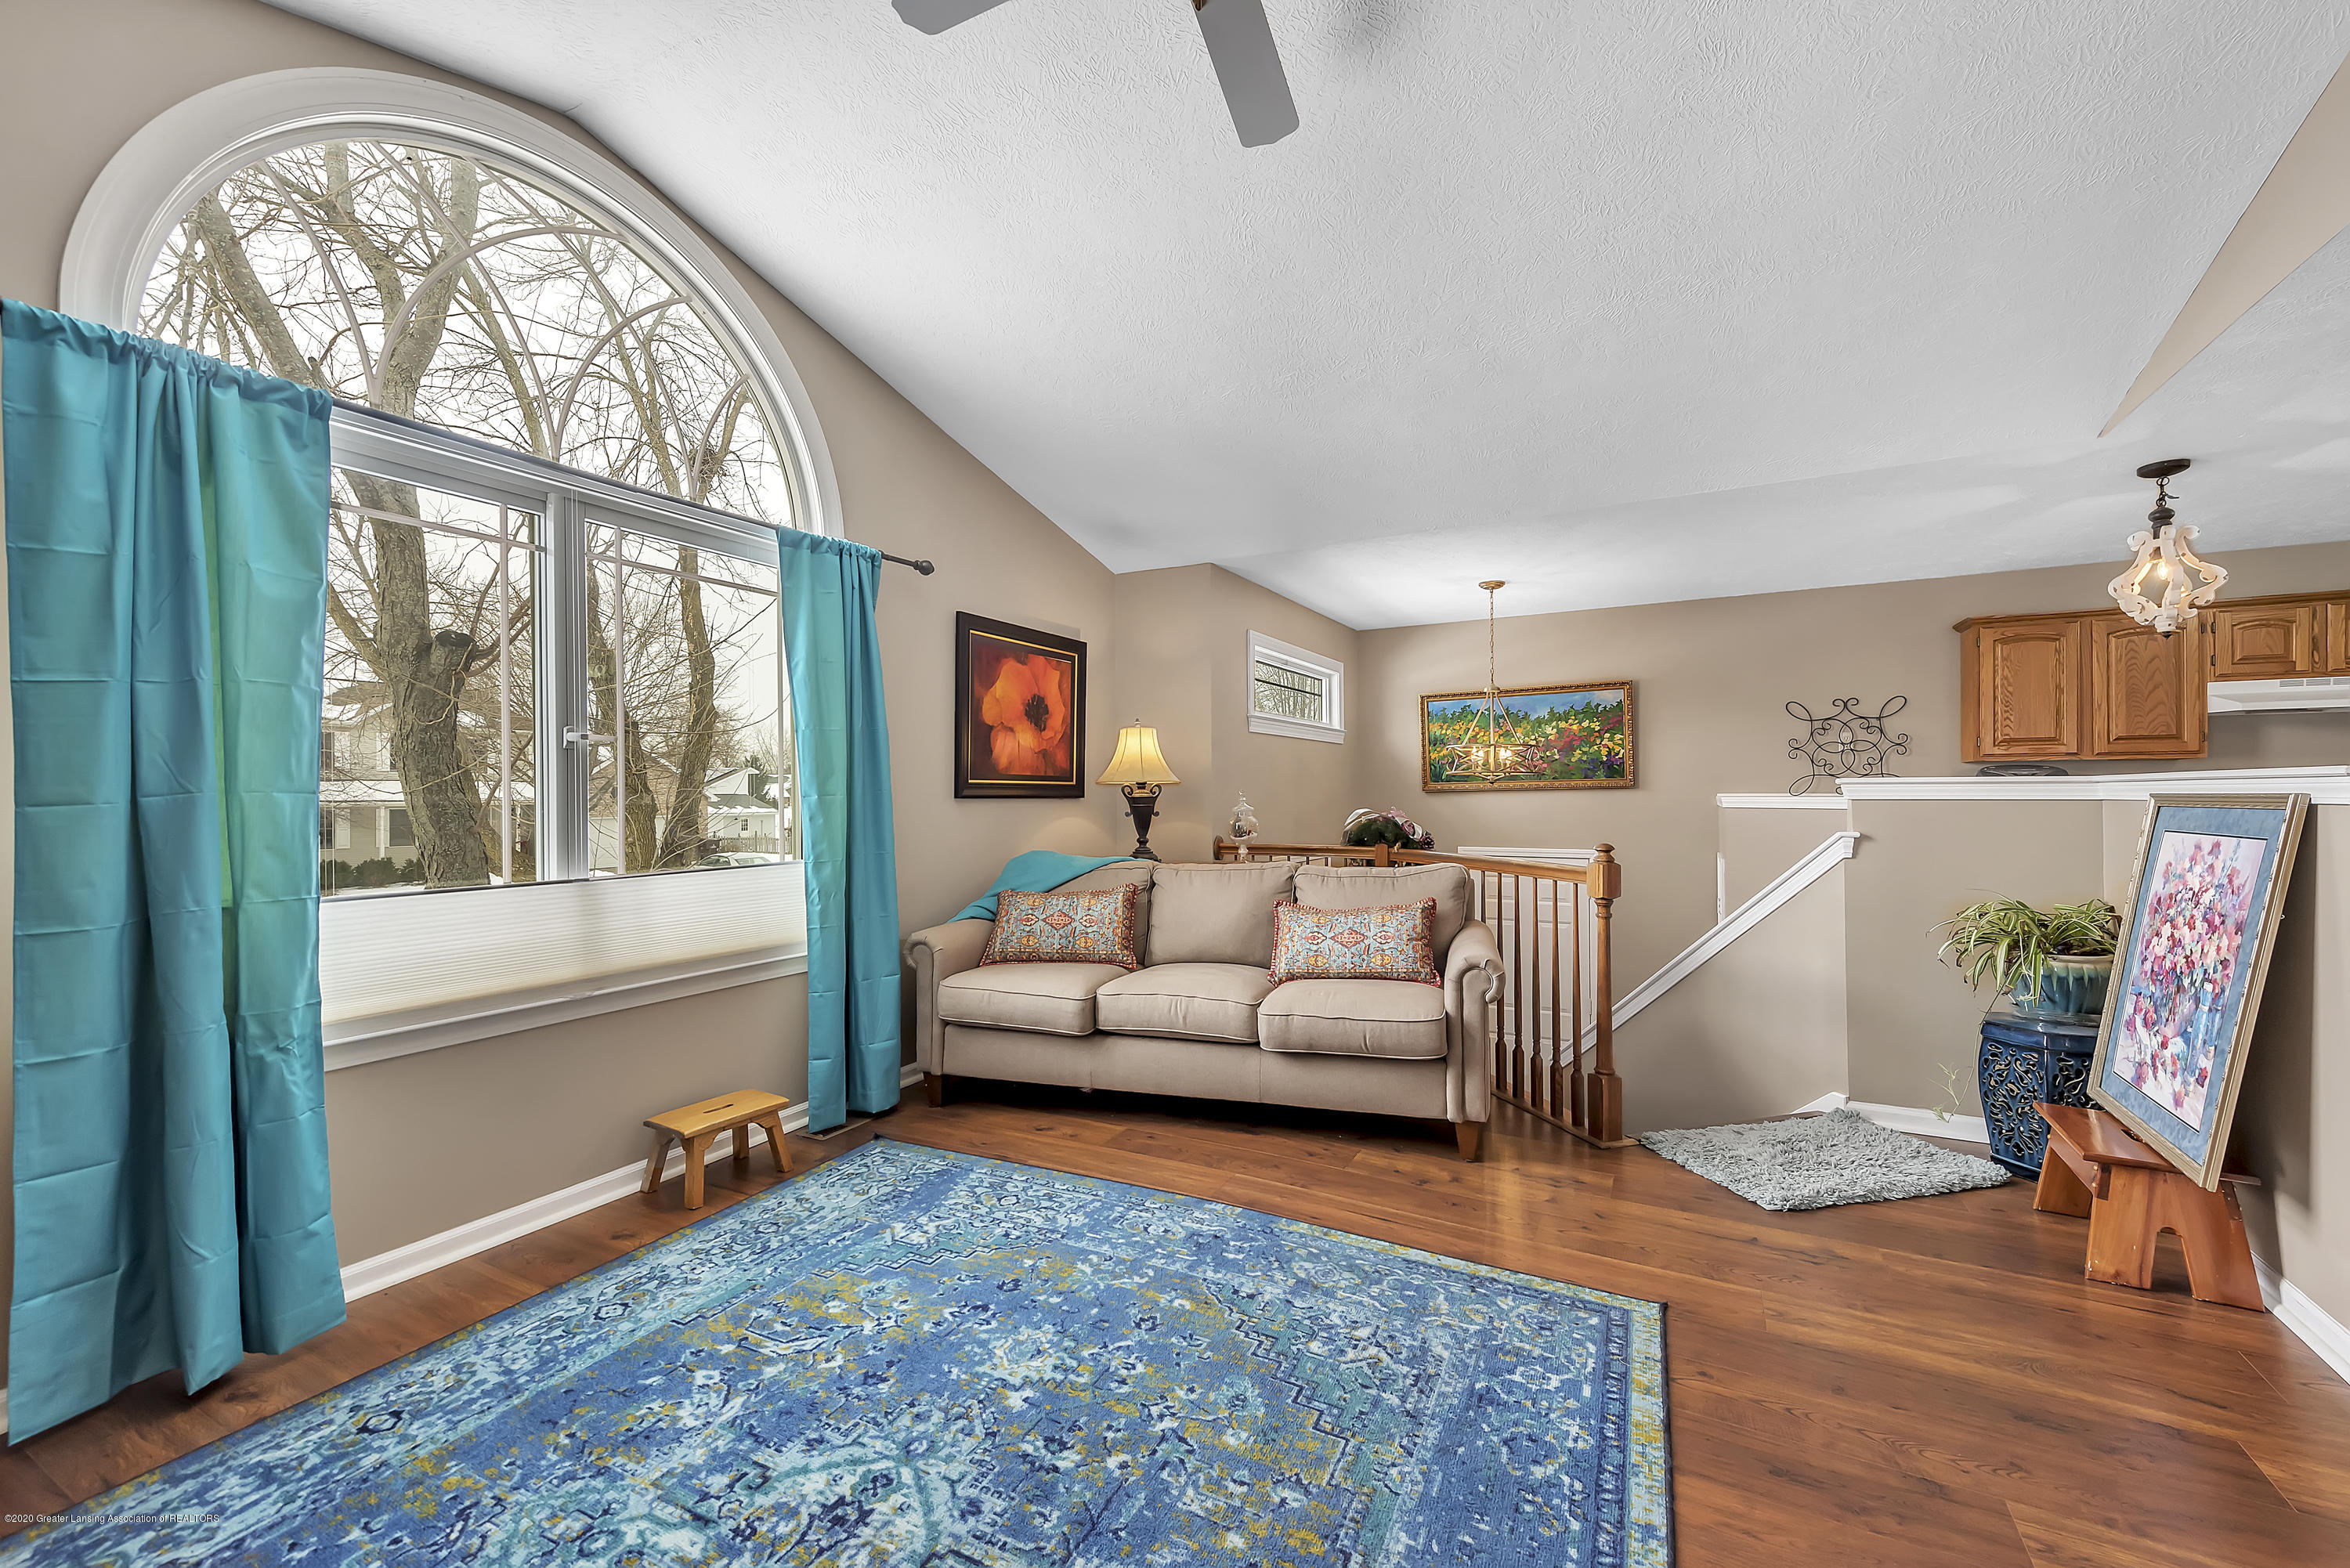 2450 Featherstone Dr - 2450-Featherstone-Dr-WindowStill-Real-Es - 9